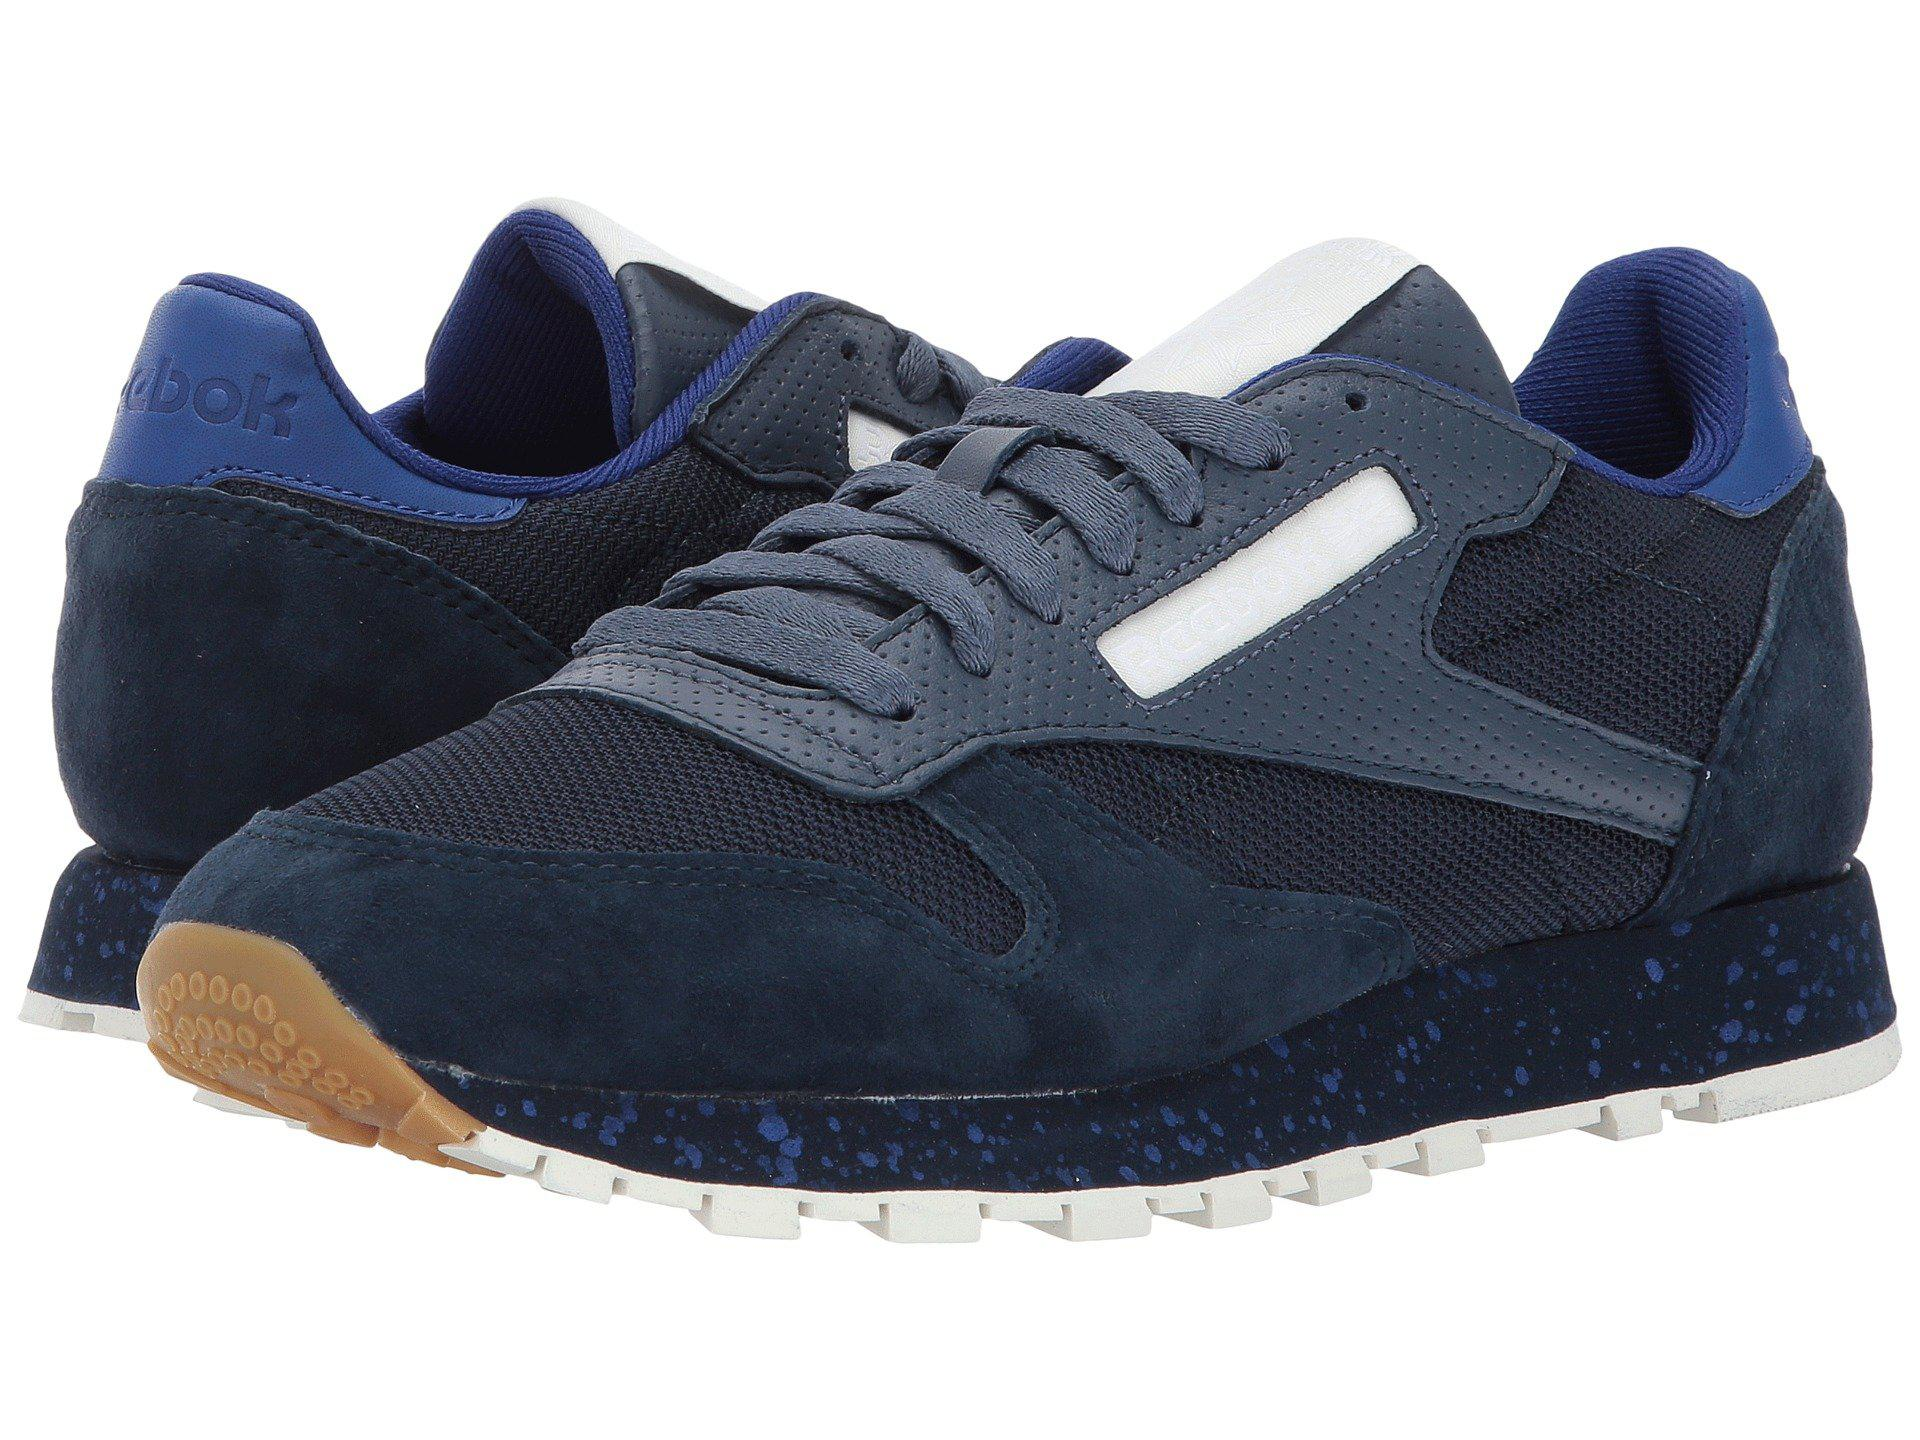 Lyst - Reebok Classic Leather Sm in Blue for Men 7ab1f84f4